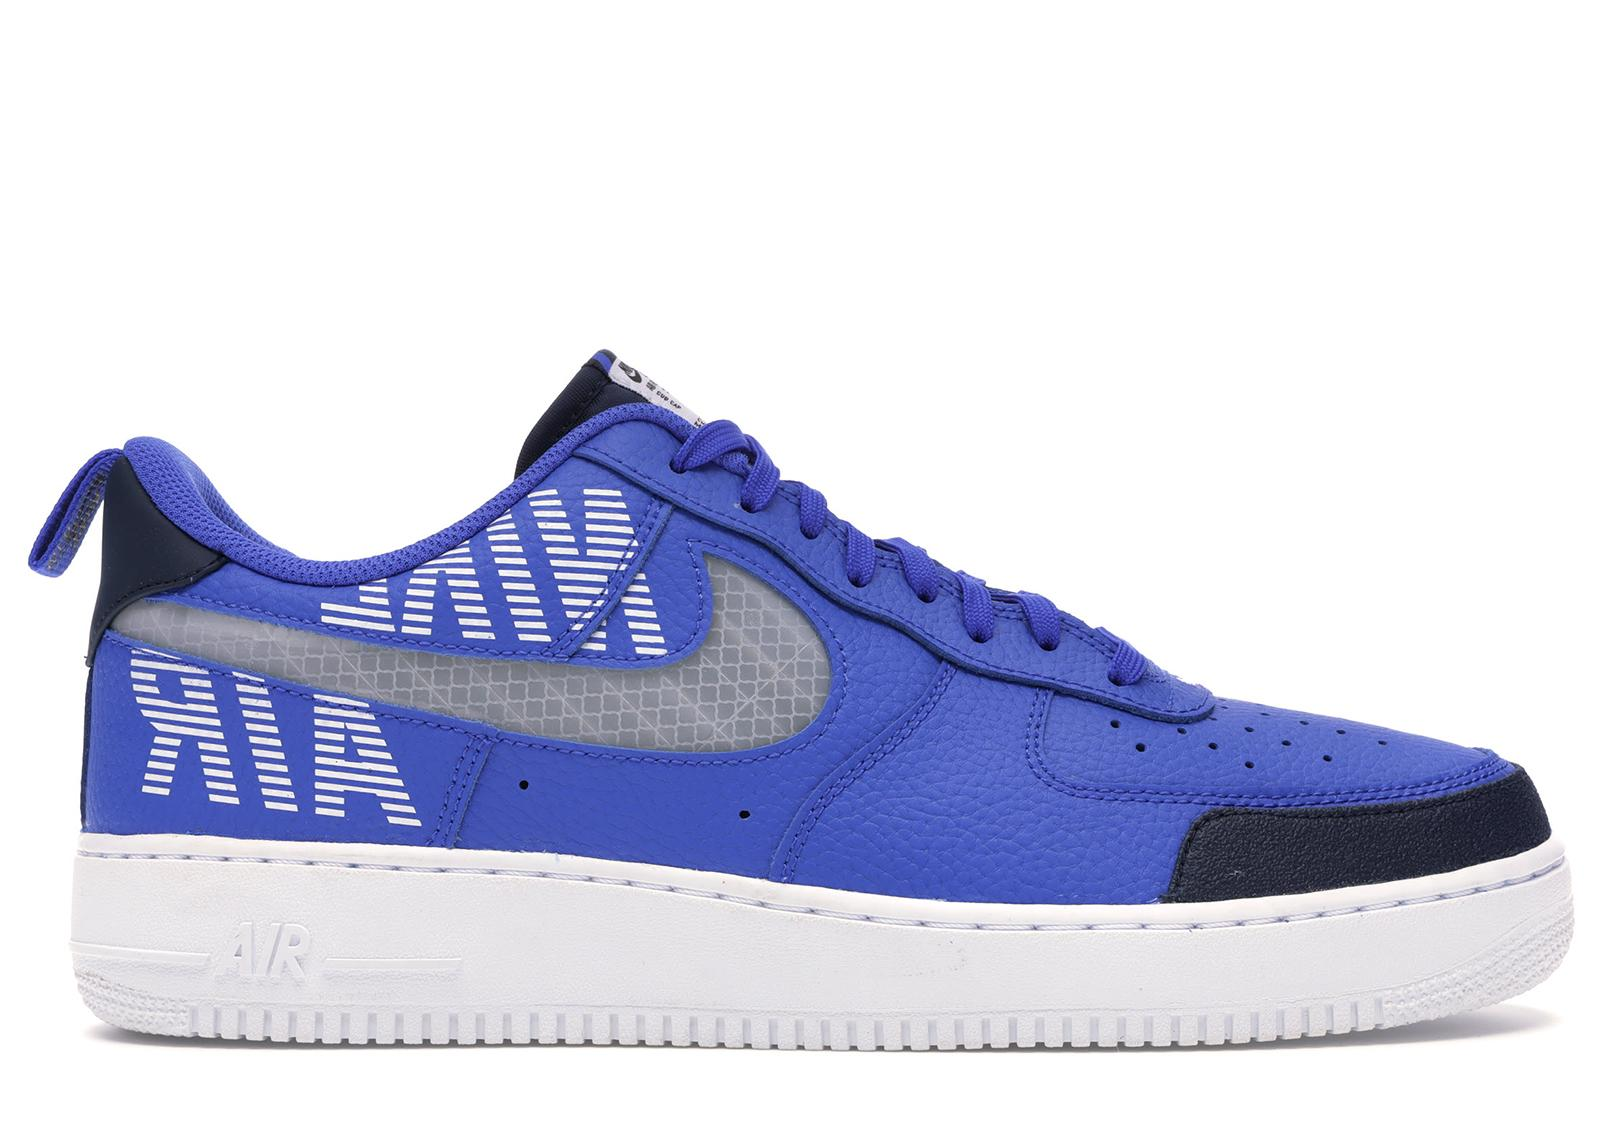 Nike Air Force 1 Low Under Construction Racer Blue for Men - Lyst